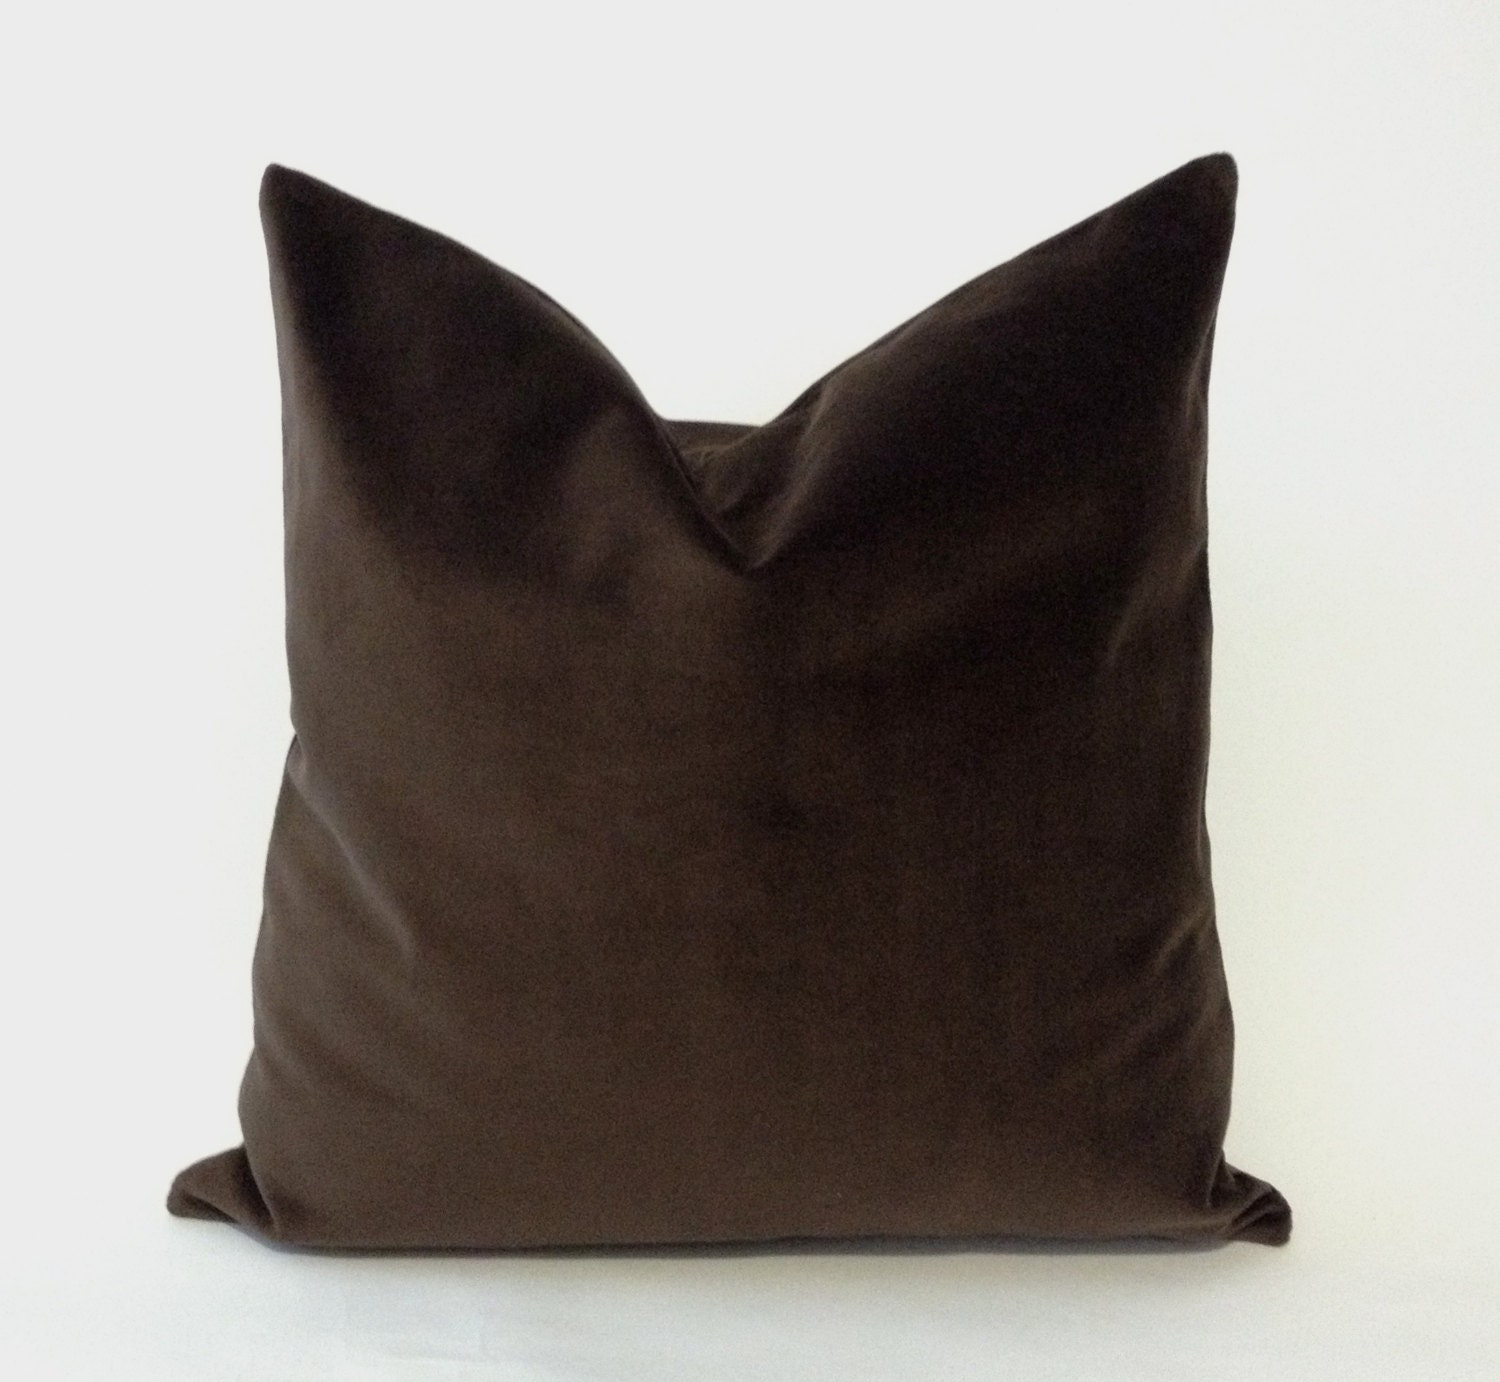 lilac citvcul velvet pillow citta share cushion